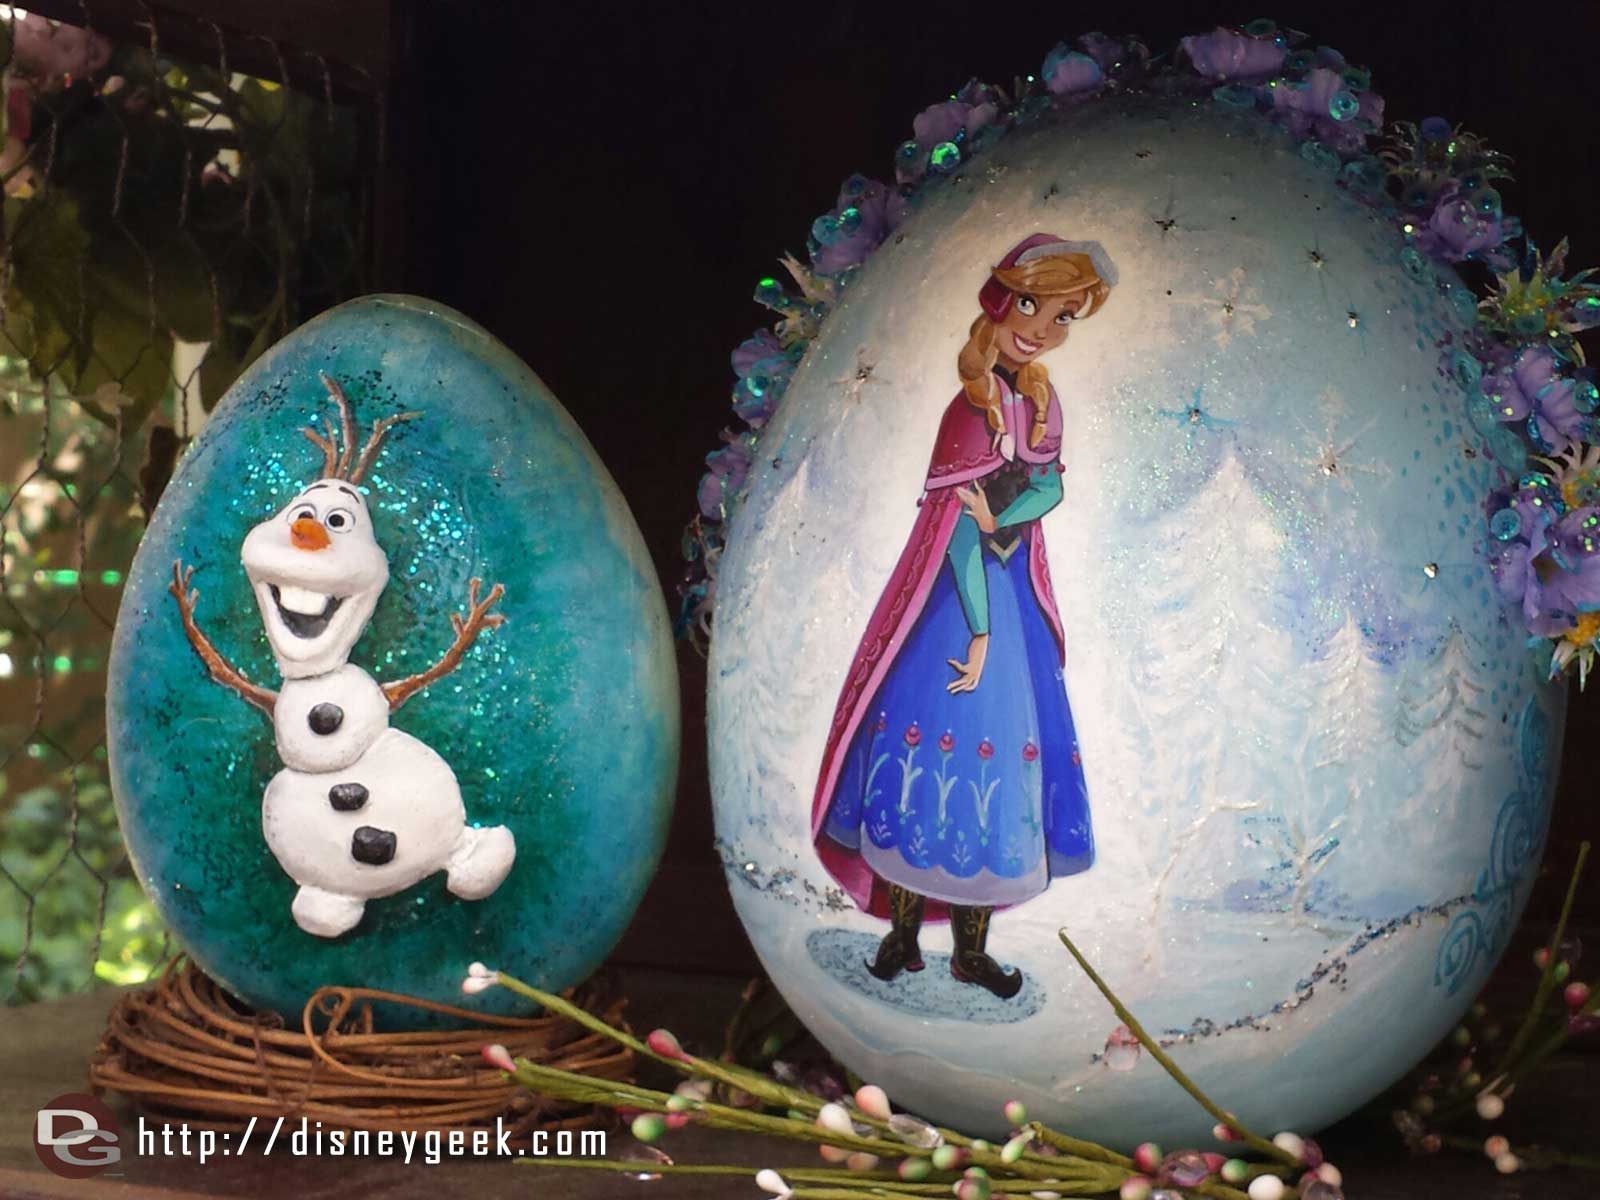 A couple more eggs, Anna and Olaf at the Springtime Roundup